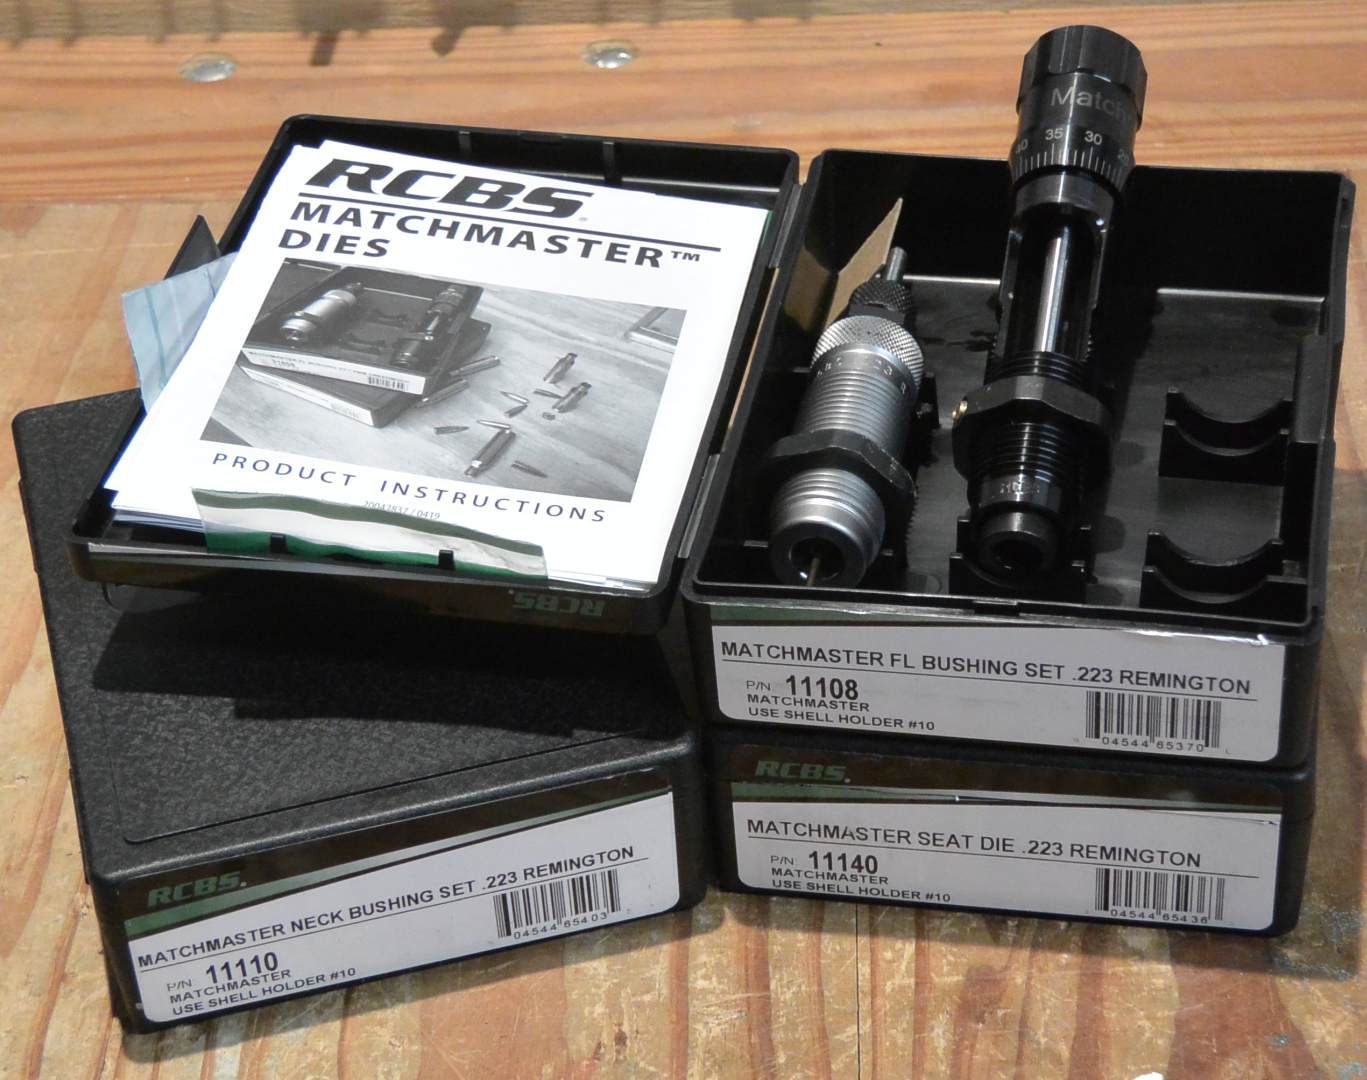 MatchMaster Competition reloading dies unboxing